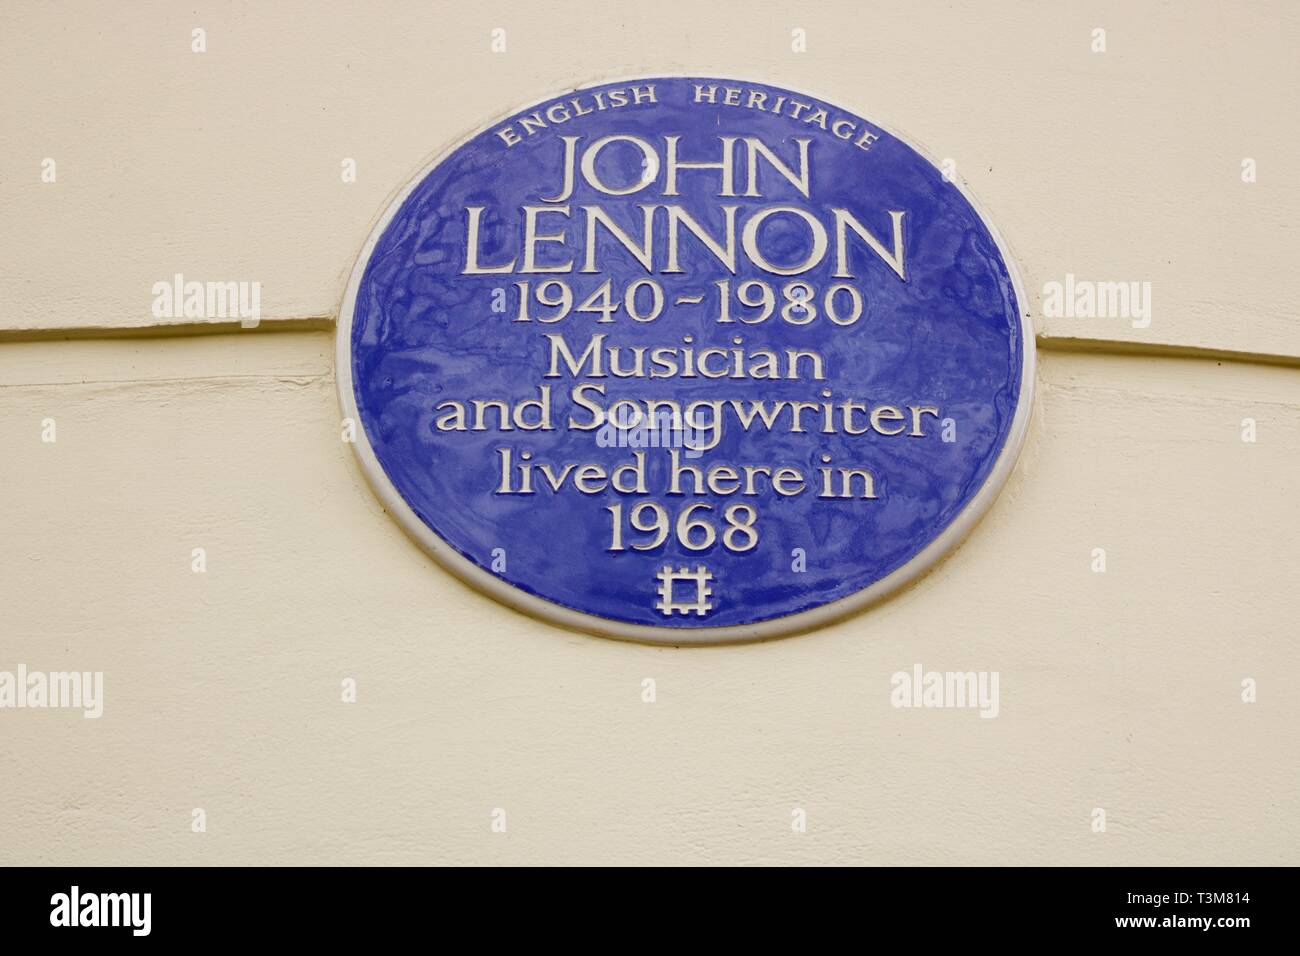 English Heritage blue plaque indicating the former home of John Lennon member of The Beatles pop group - Stock Image